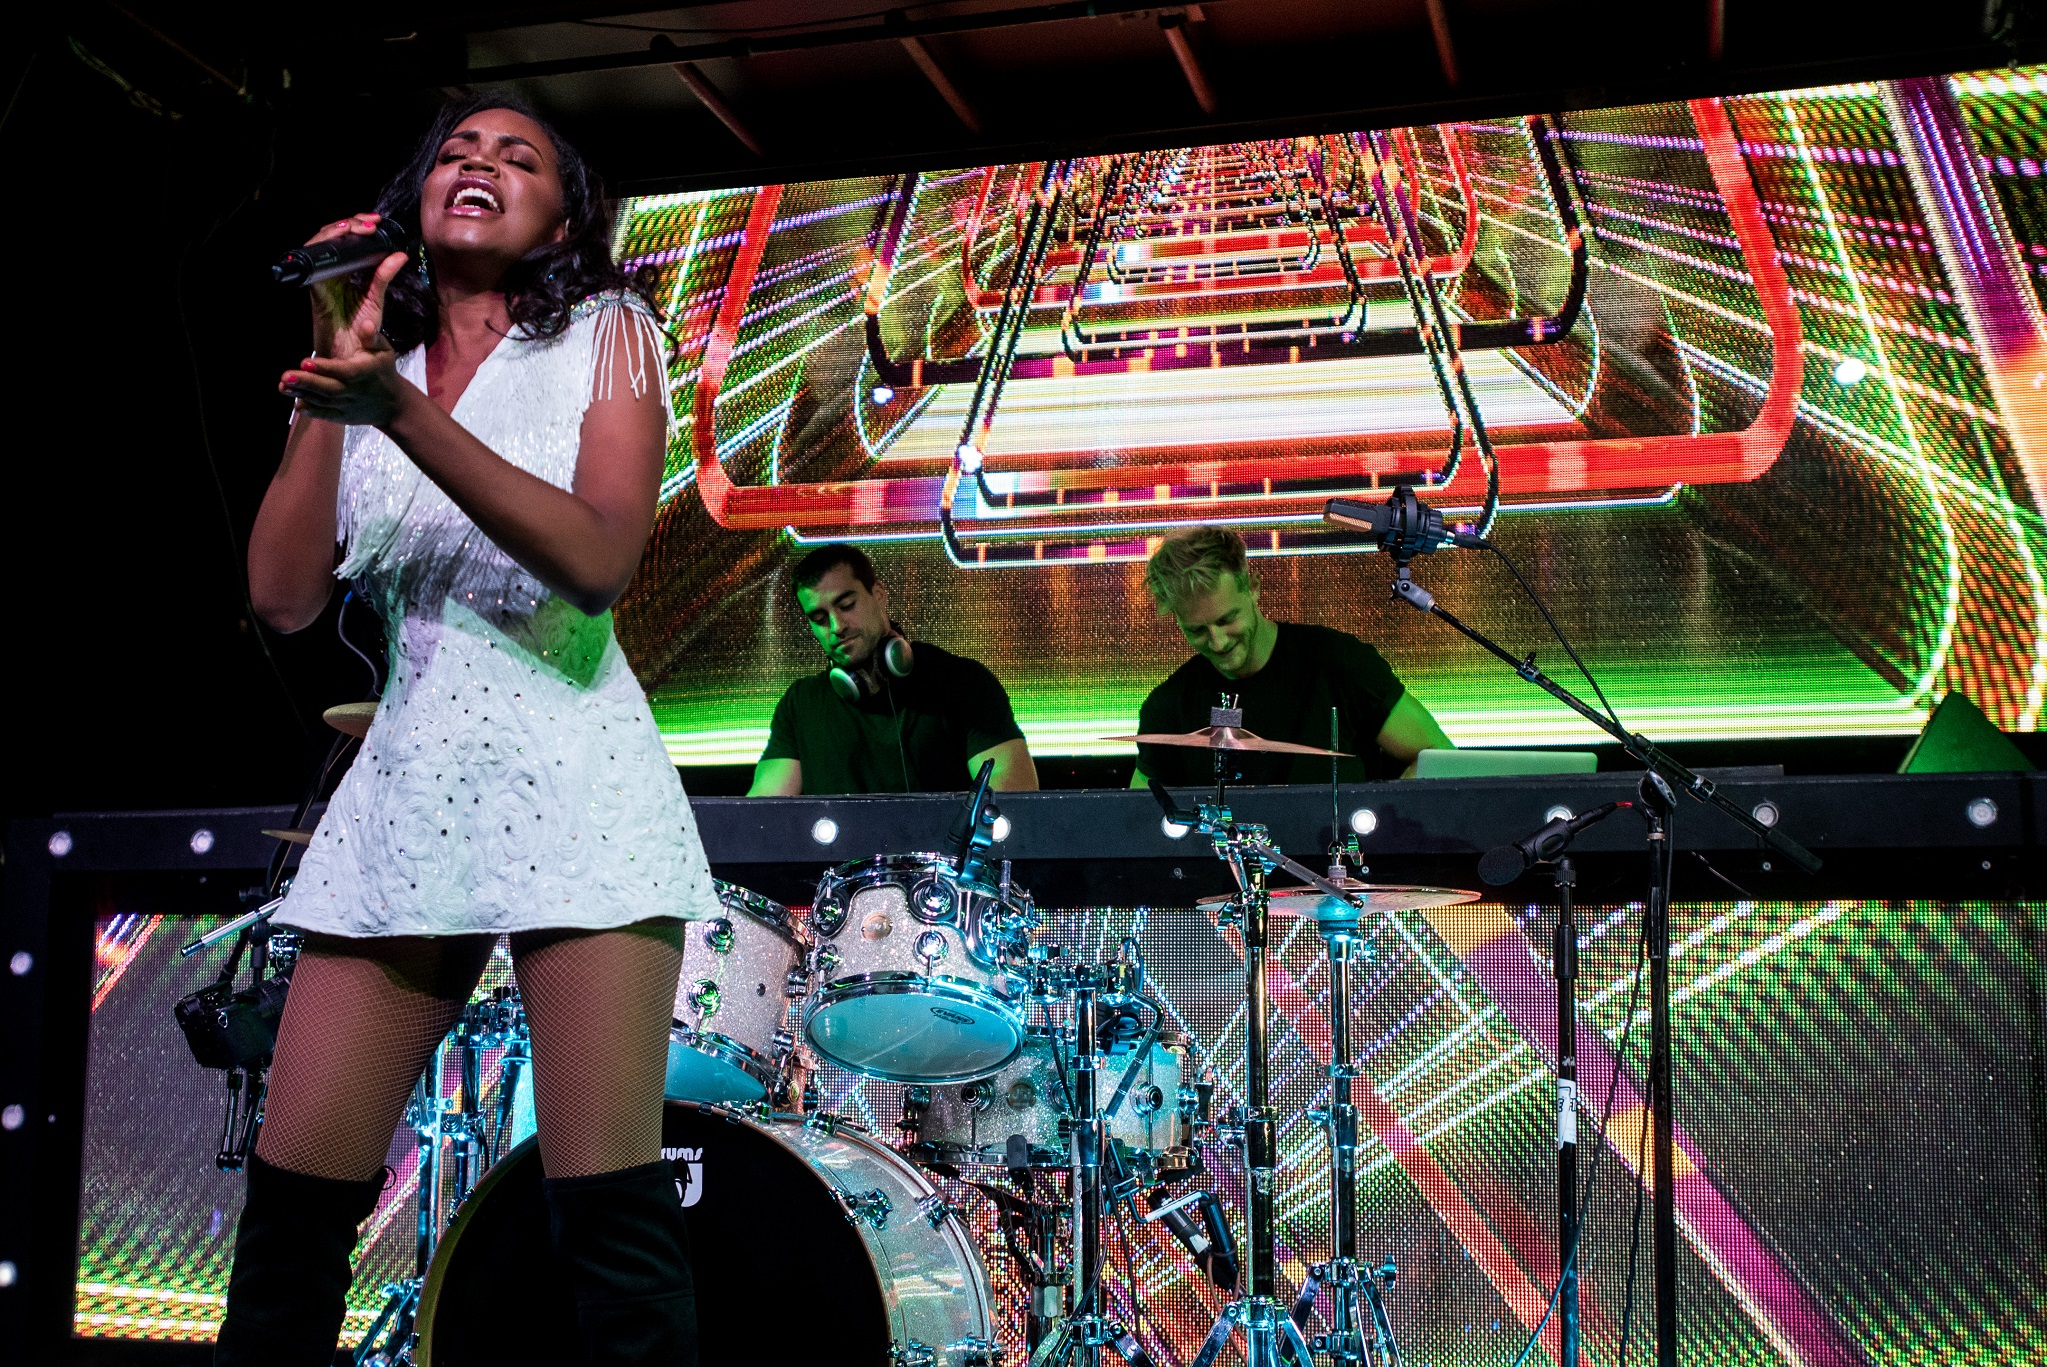 Glorious-Singer-Livetronica Drummer-Producer-Songwriter-Marquee-Nightclub-Video-New York-NY-34lr.jpg